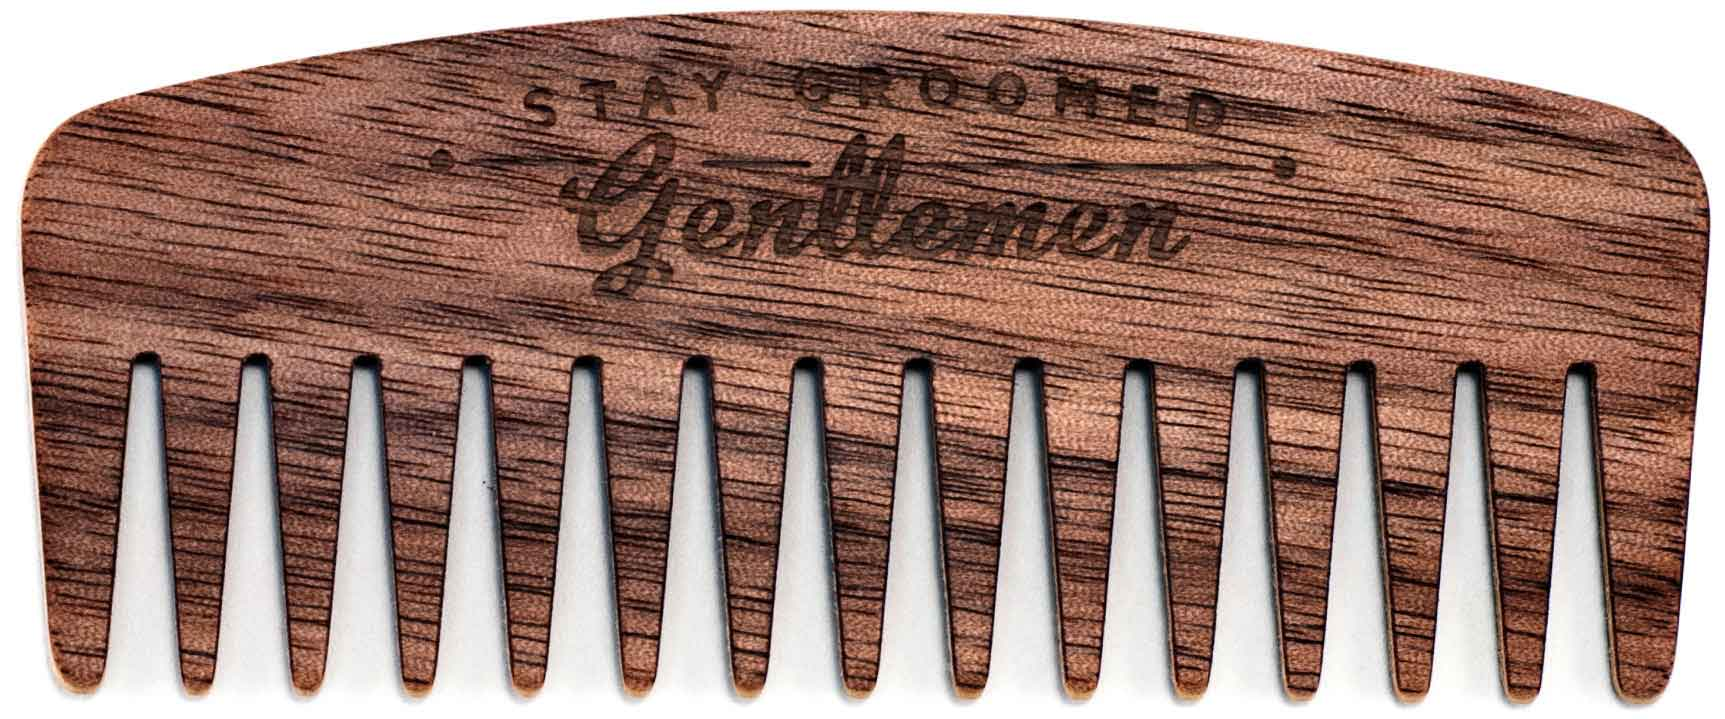 Image result for comb